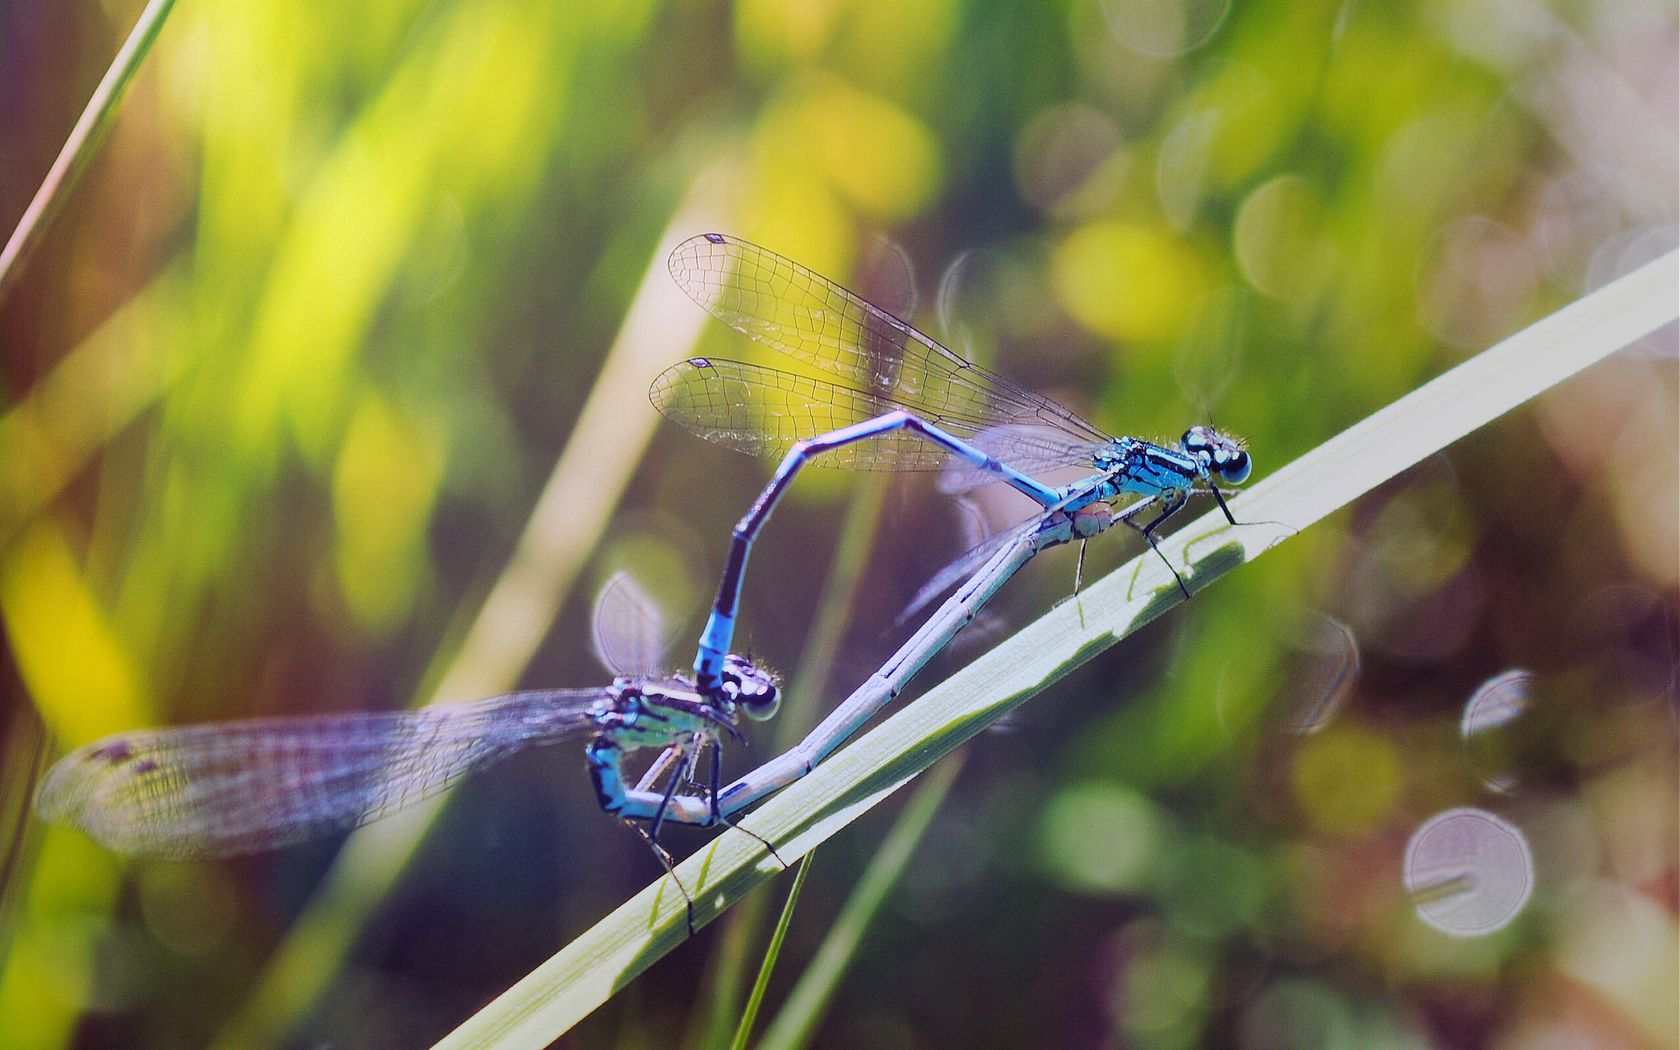 113003 download wallpaper Macro, Grass, Insects, Dragonflies screensavers and pictures for free